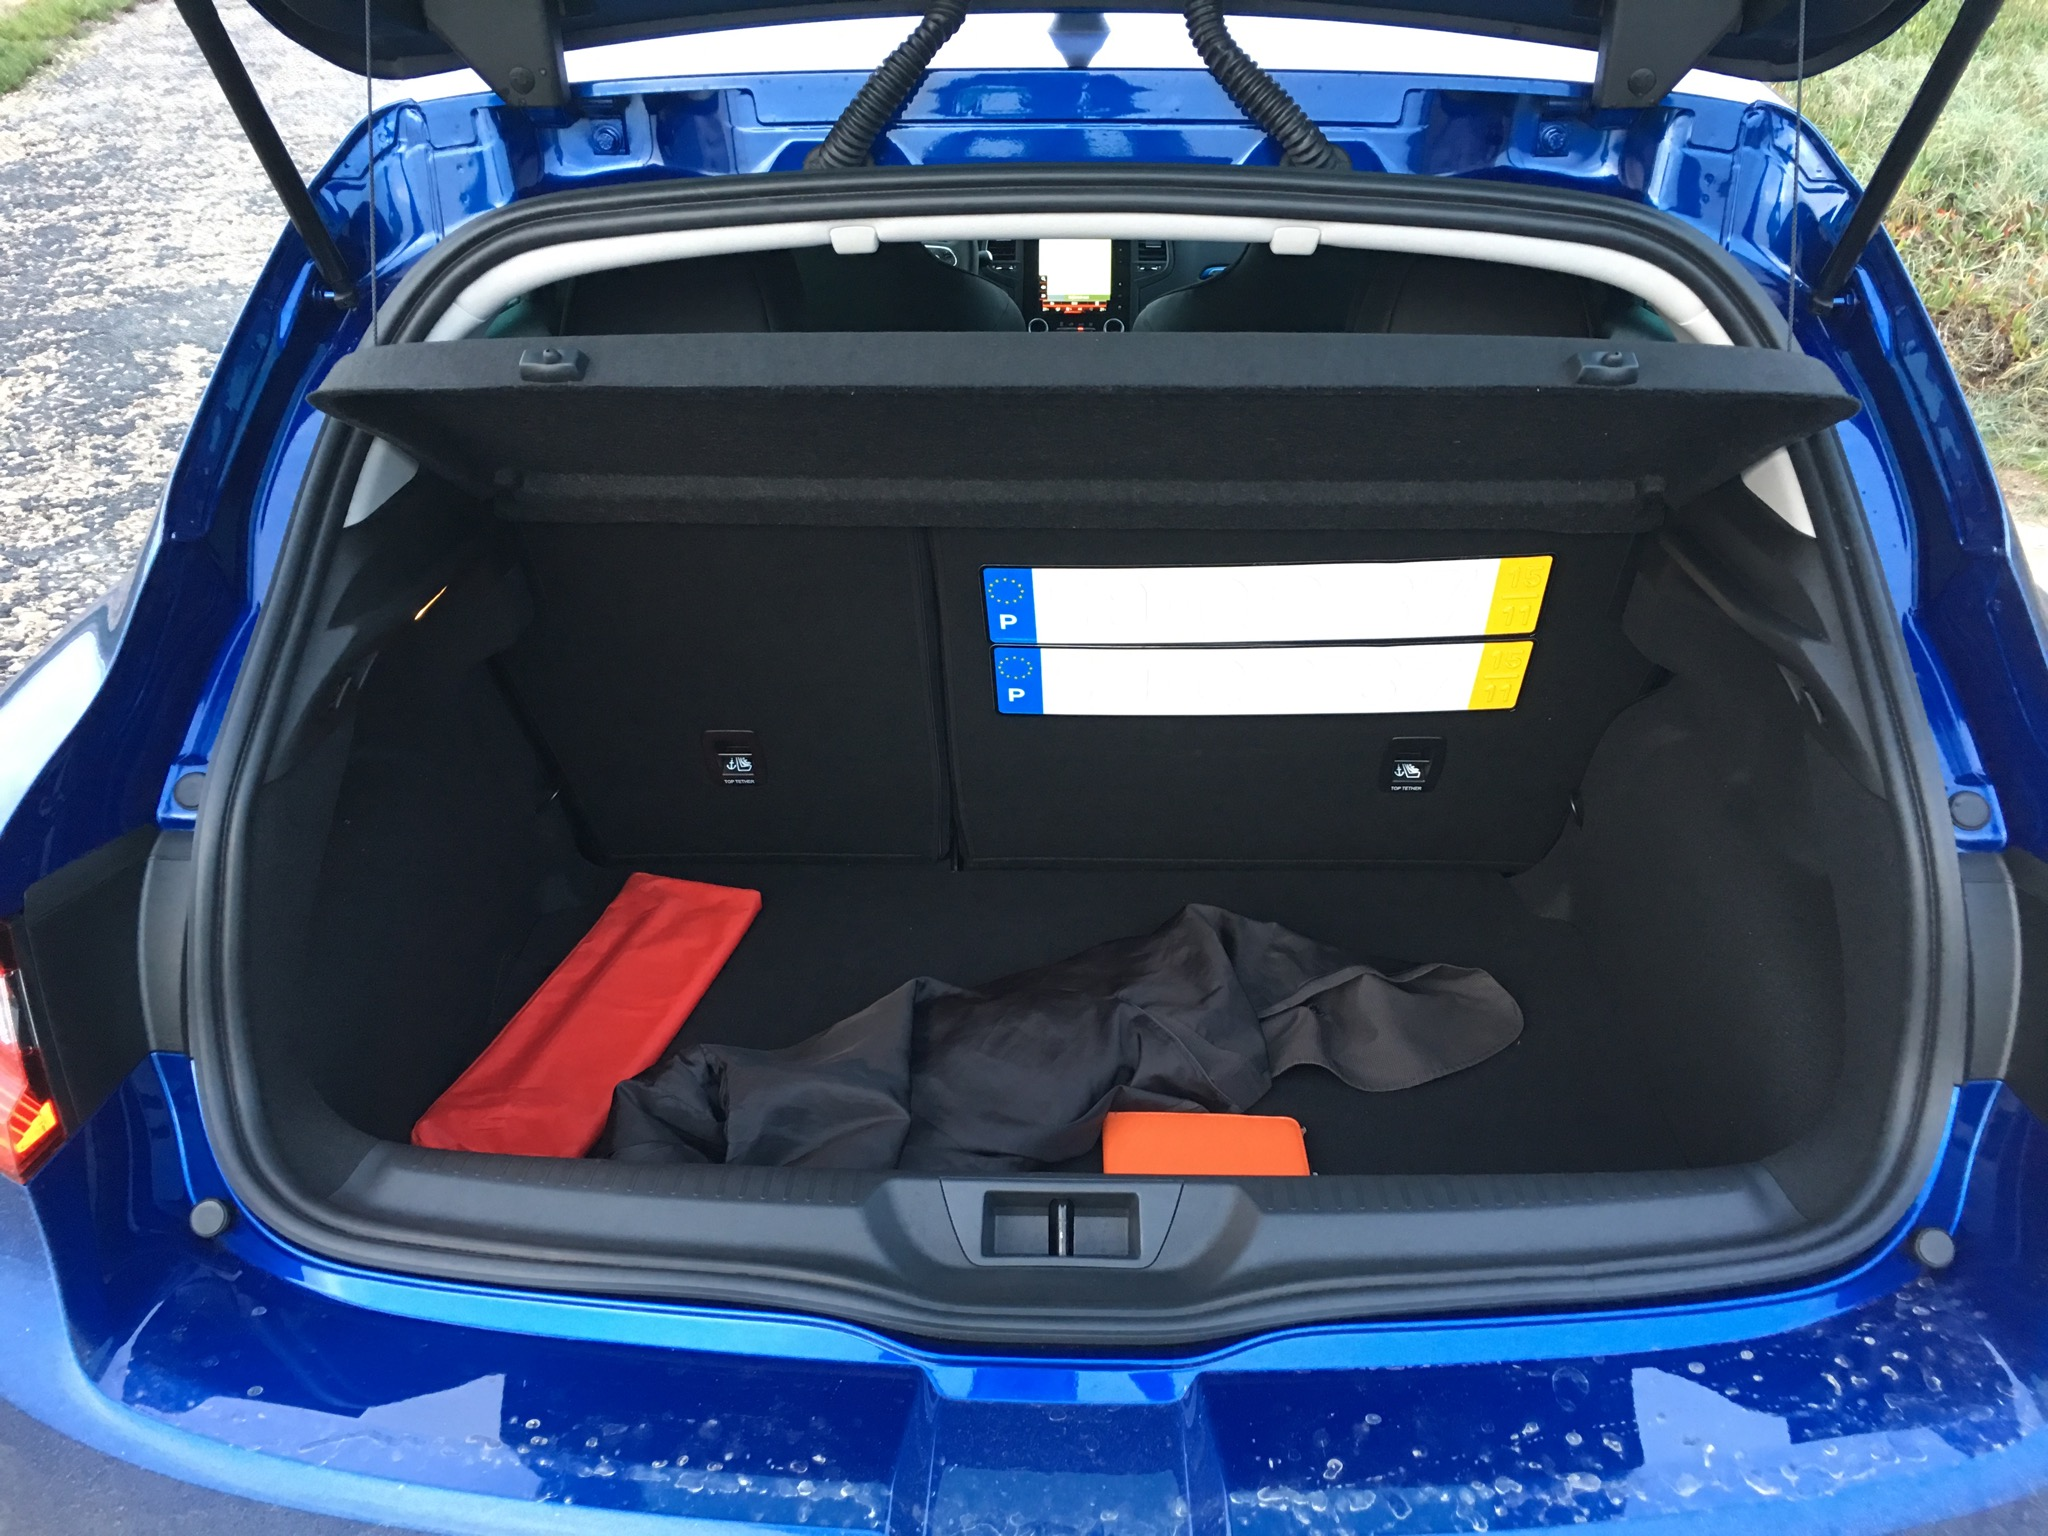 2016 Renault Megane Gt Trunk Space (Photo 14 of 27)